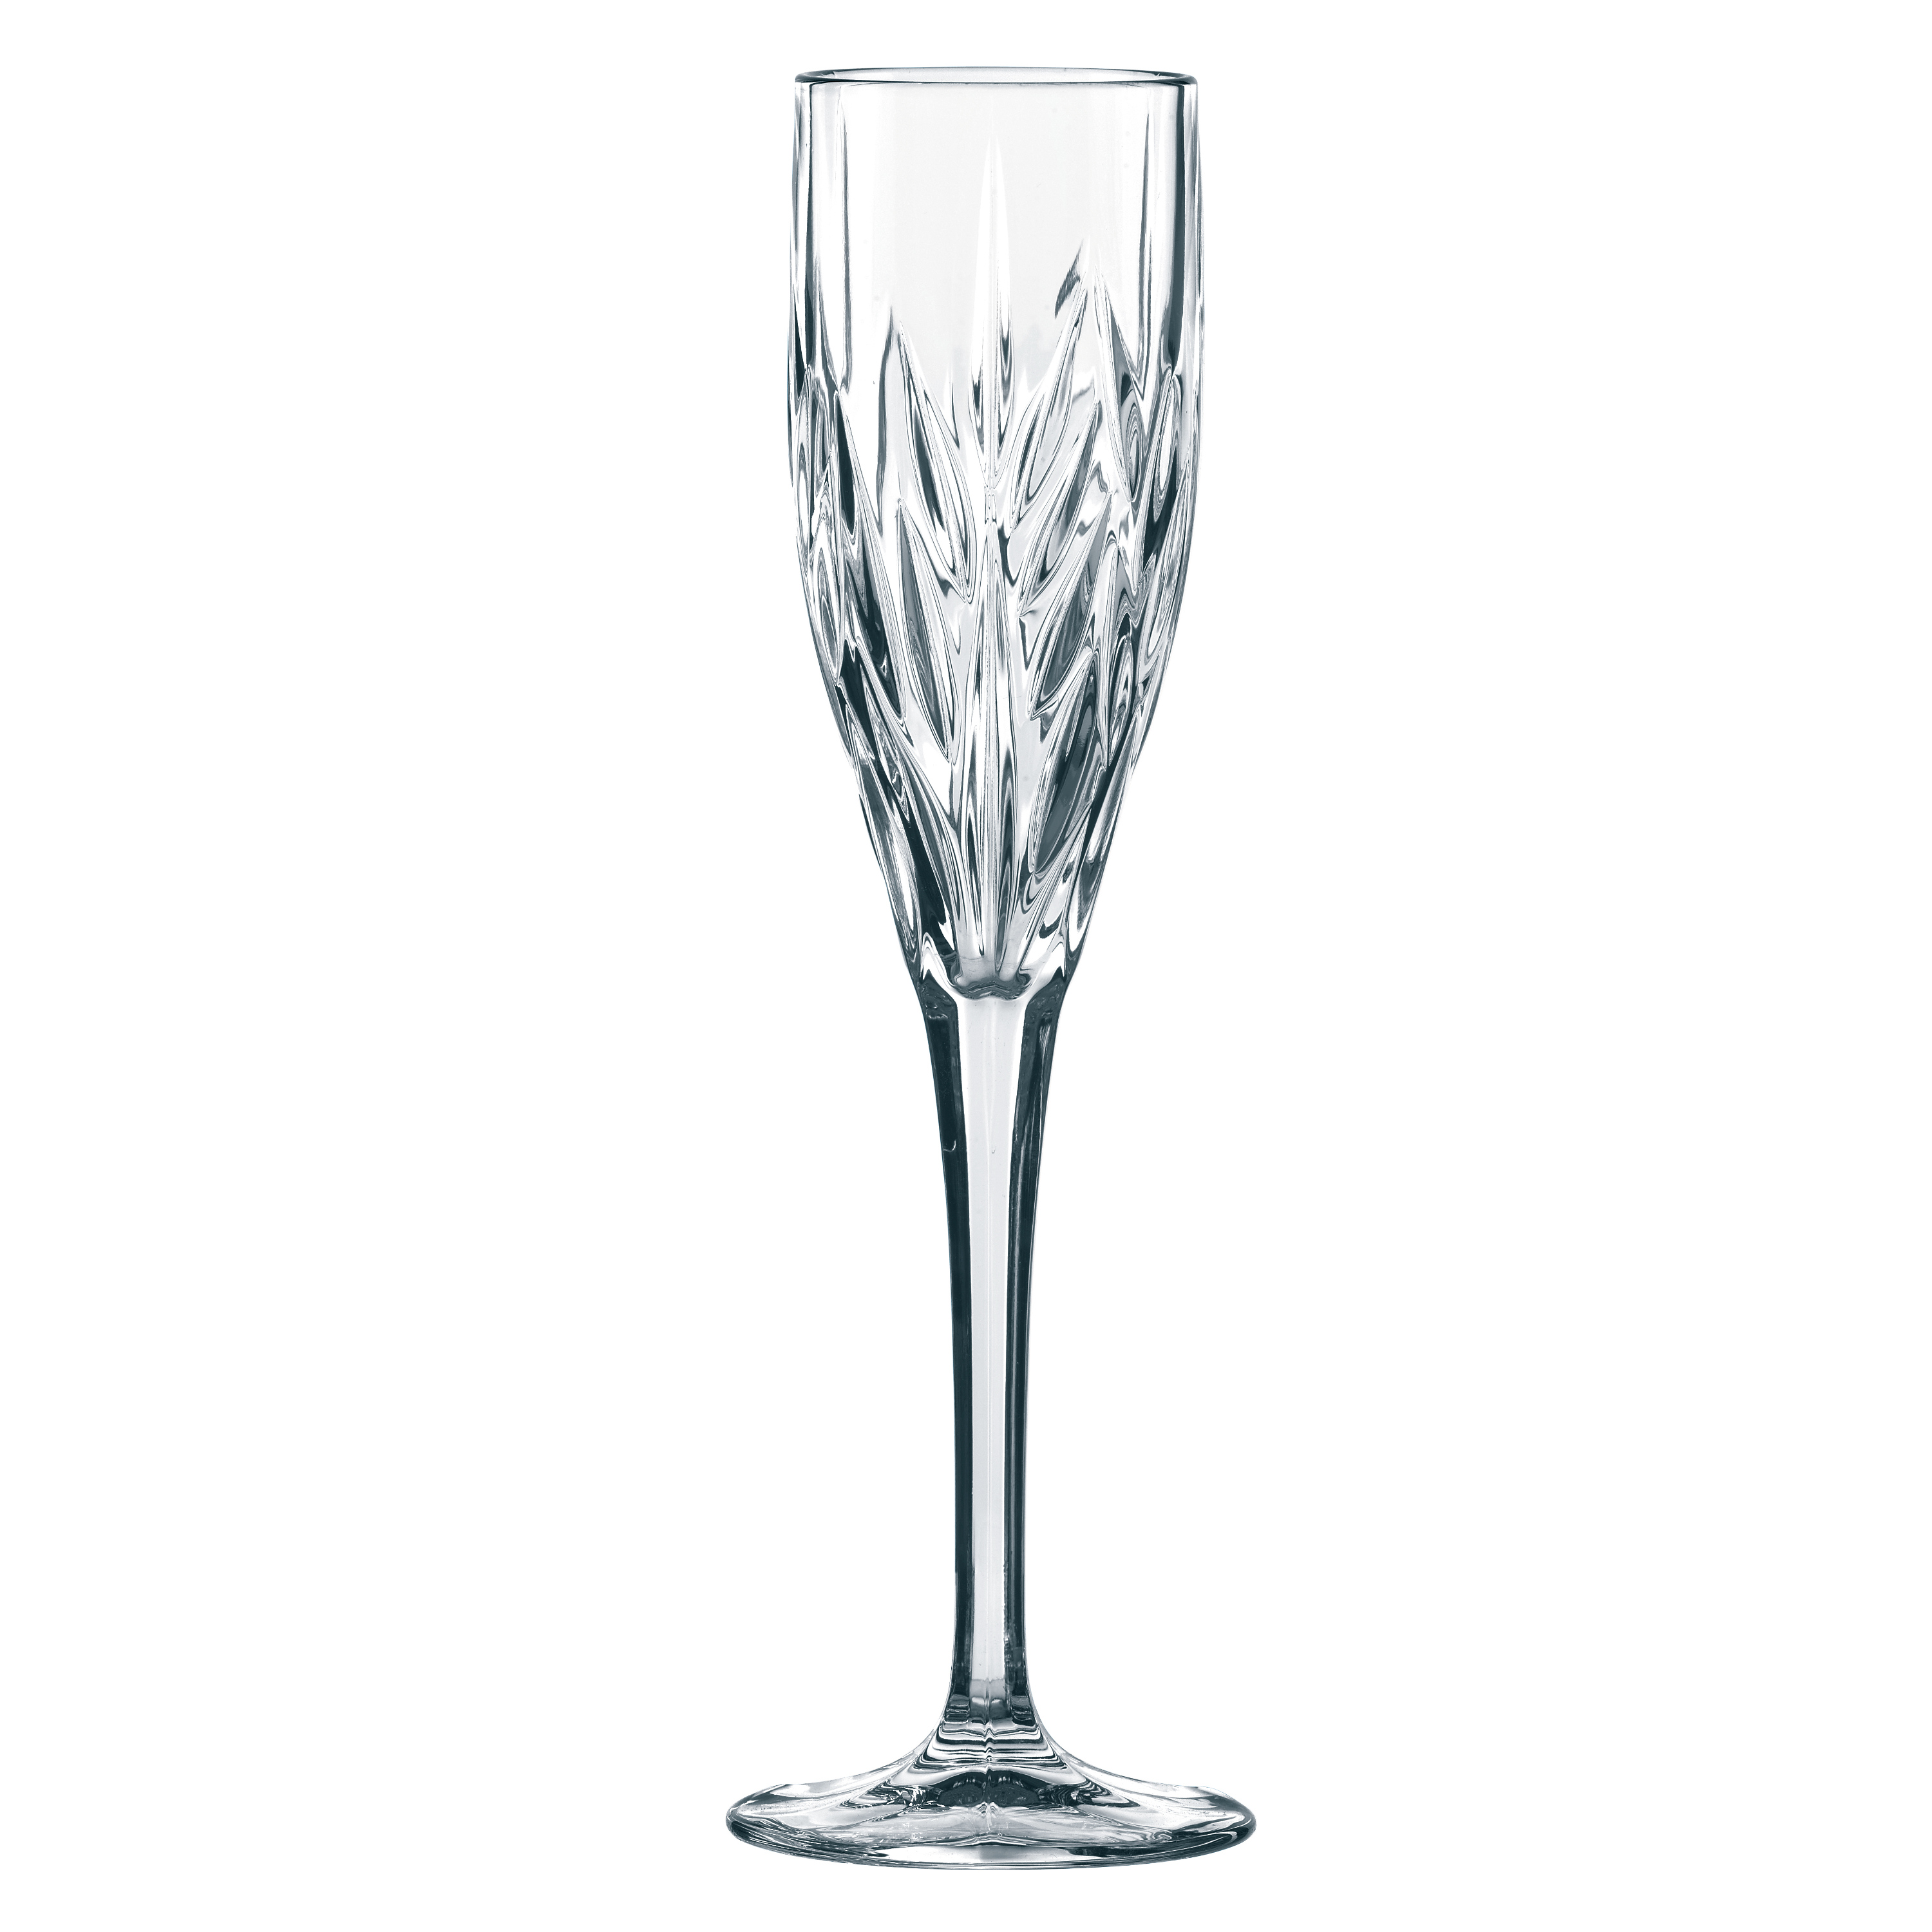 Nachtmann Imperial Leaded Crystal Sparkling Wine Glass, Set of 4